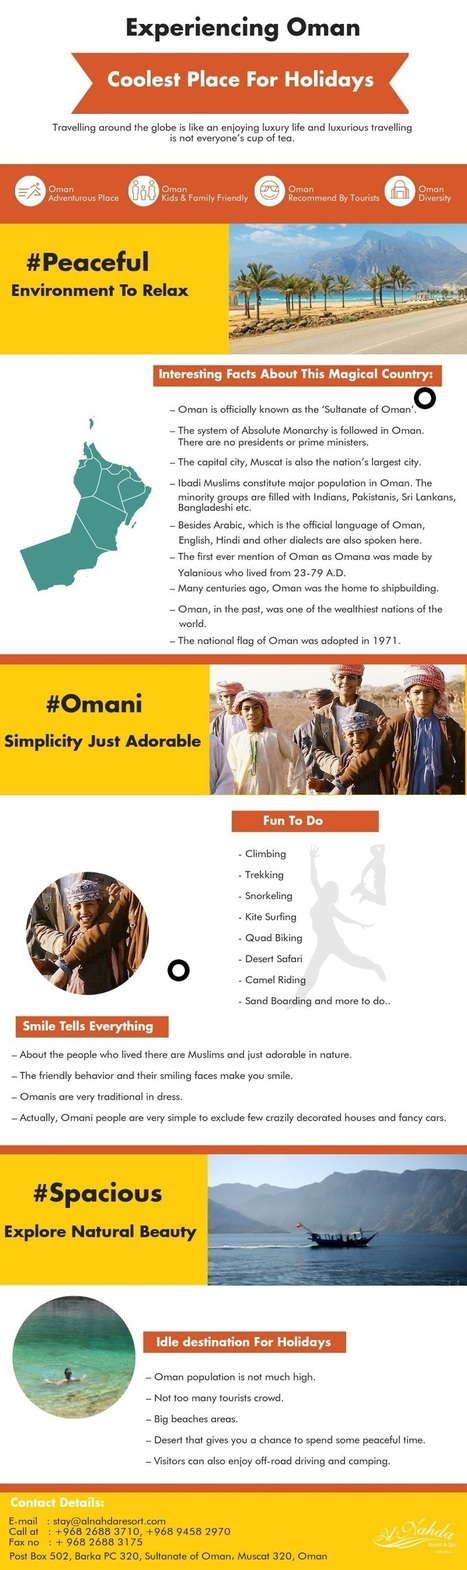 Experiencing Oman: Coolest Place For Holidays   Hotels   Resorts   Restaurants   Scoop.it